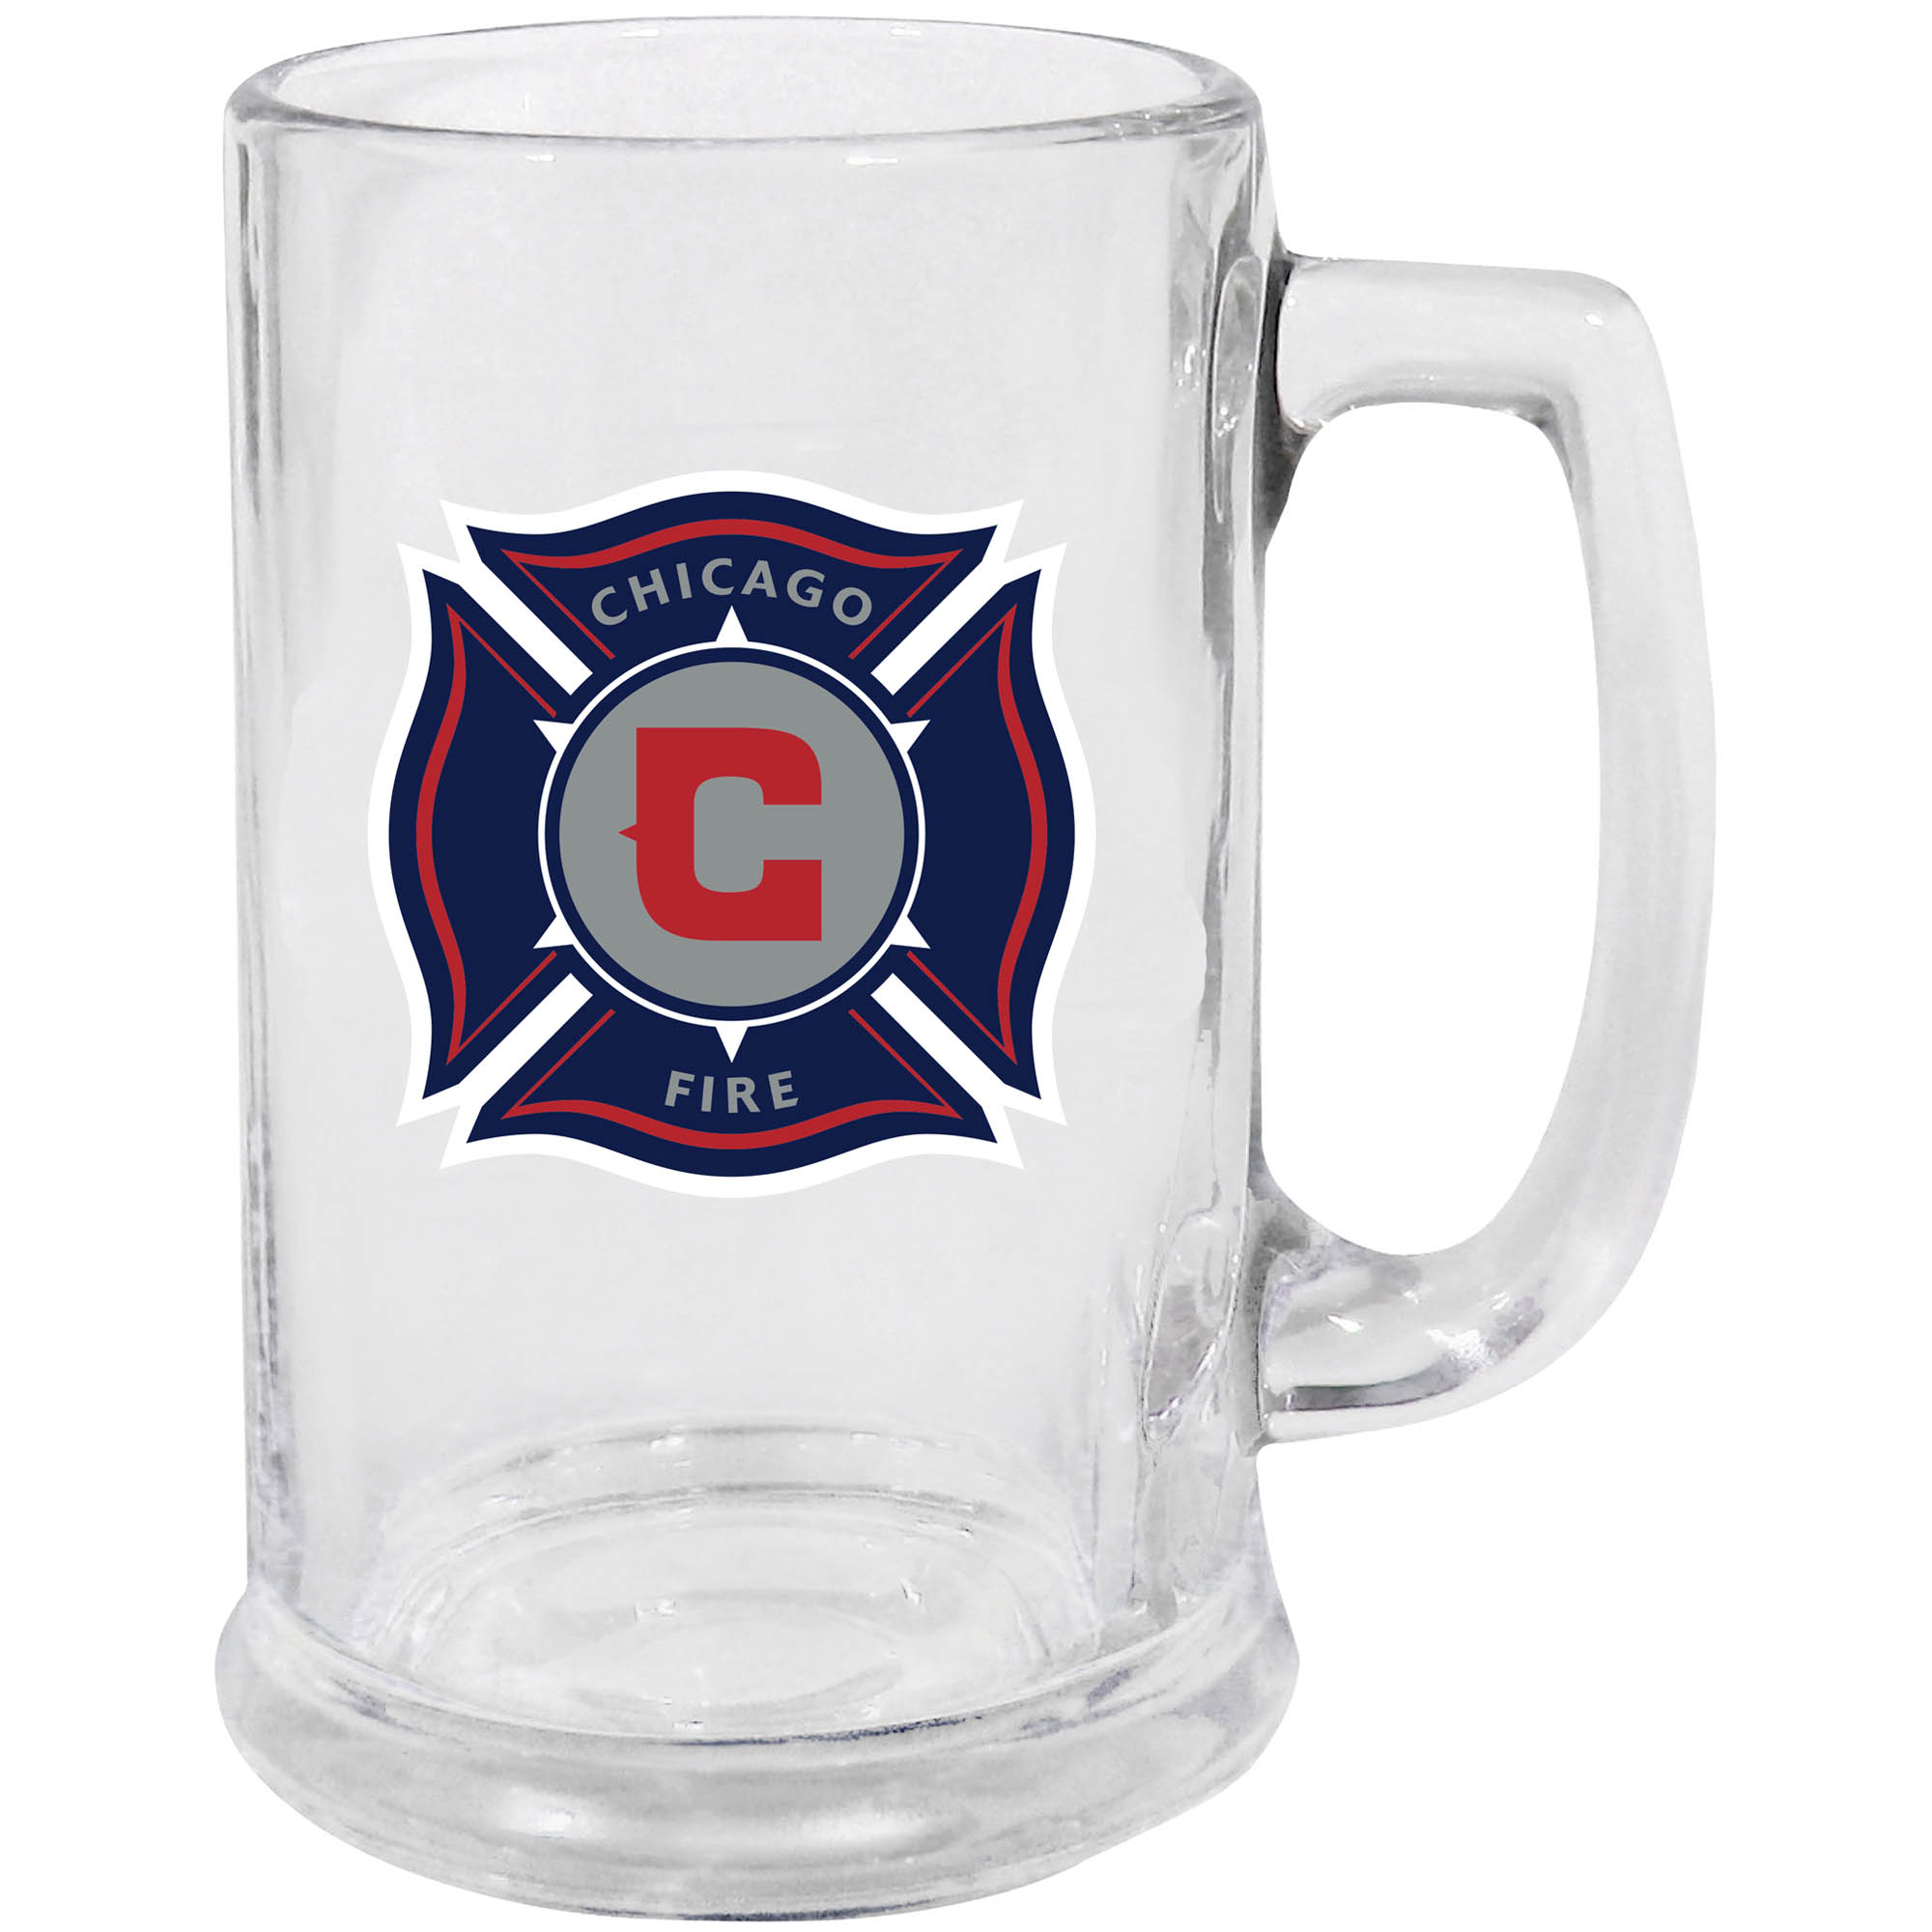 Chicago Fire 15oz. Glass Stein - No Size